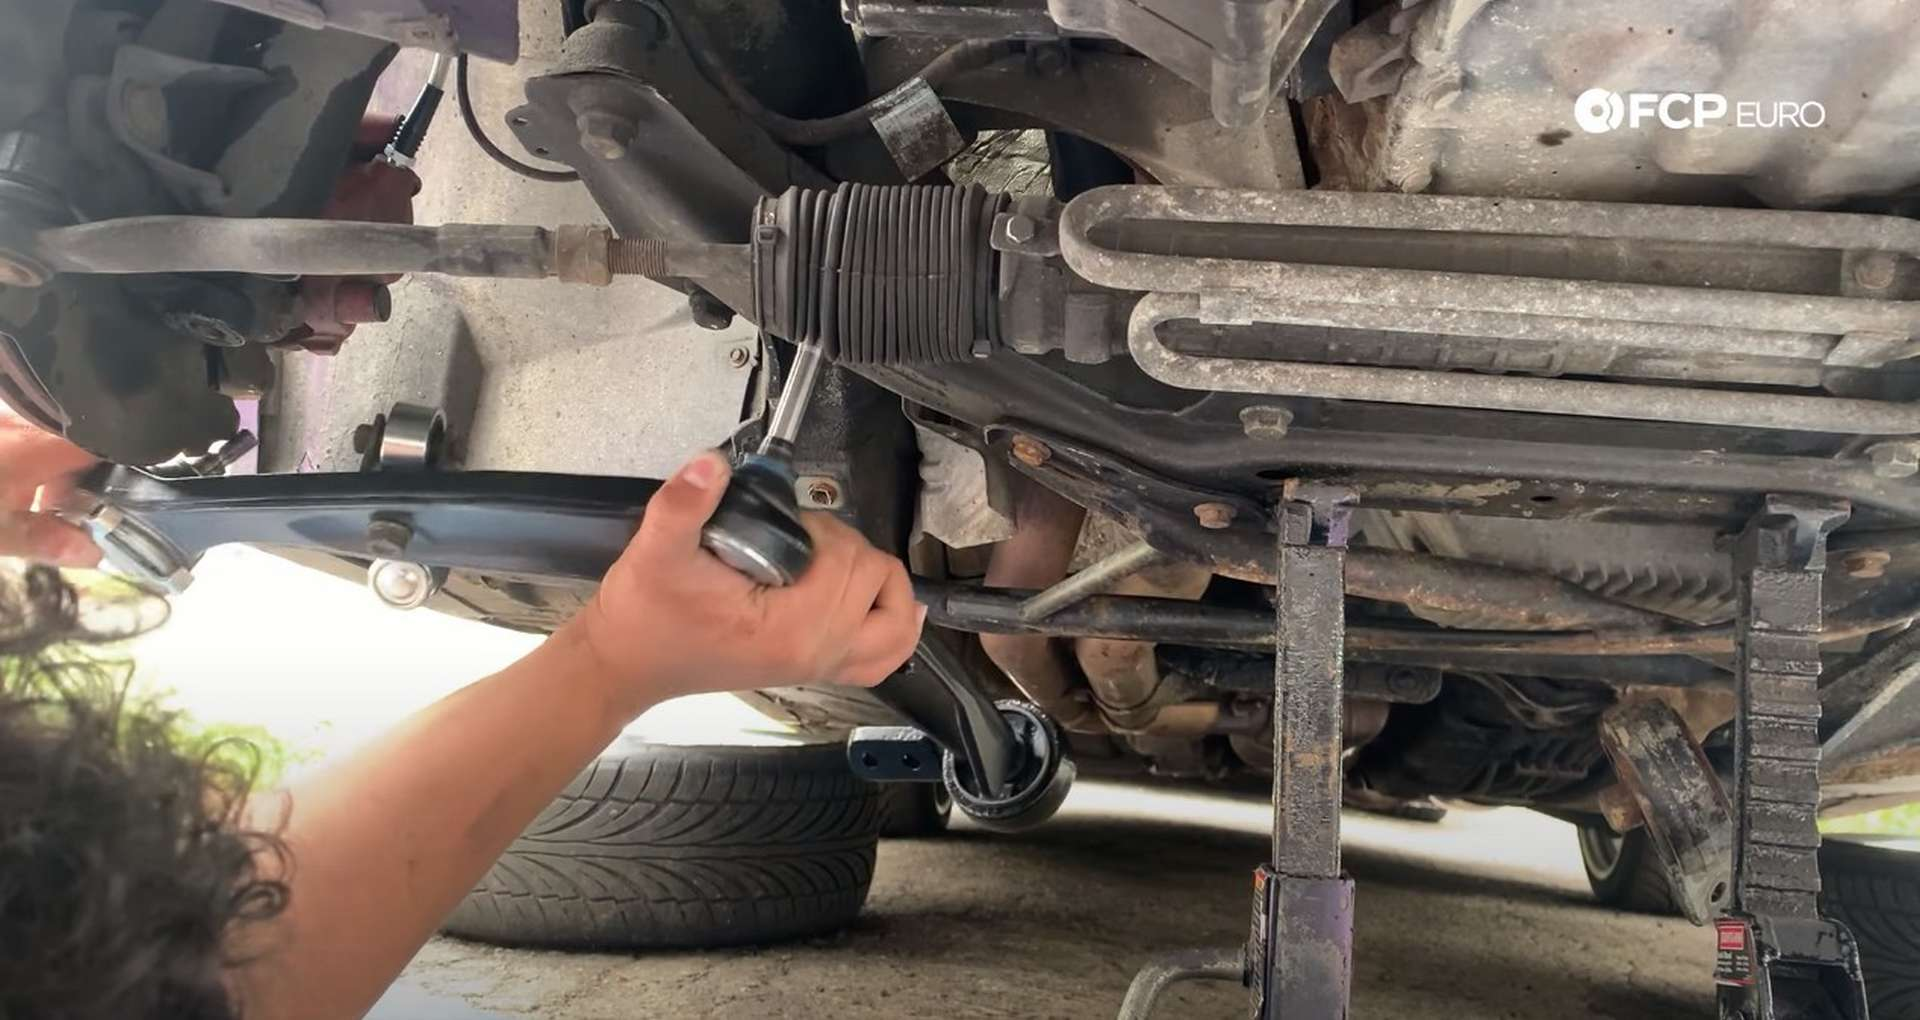 DIY BMW E36 Control Arm and Bushings installing the control arm into the subframe